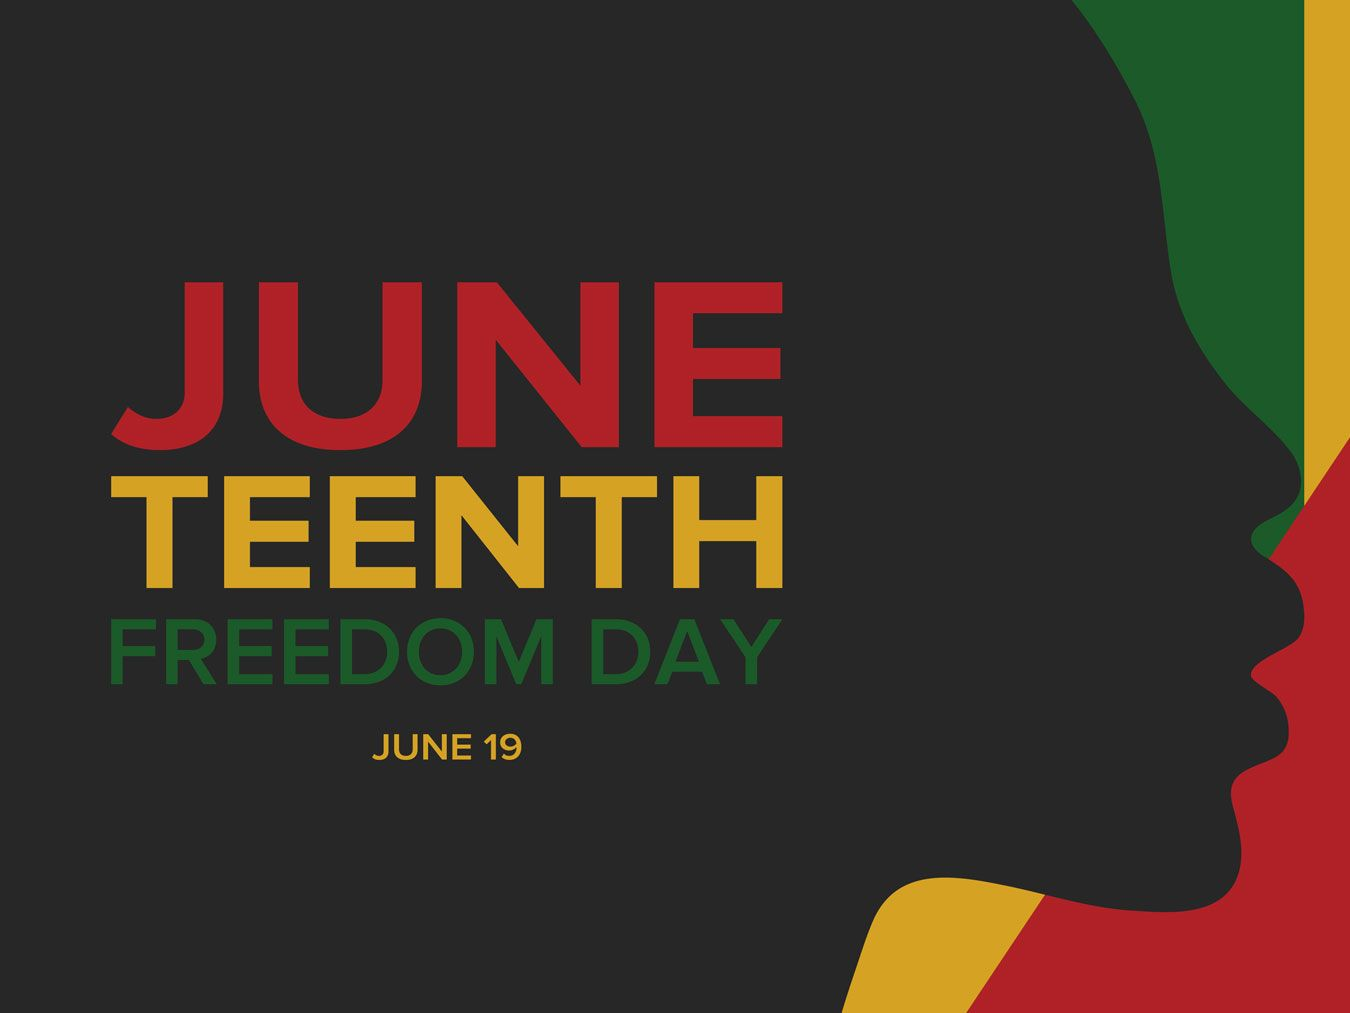 Juneteenth 2020: Celebrating Black Freedom, Fighting for Justice and Equality